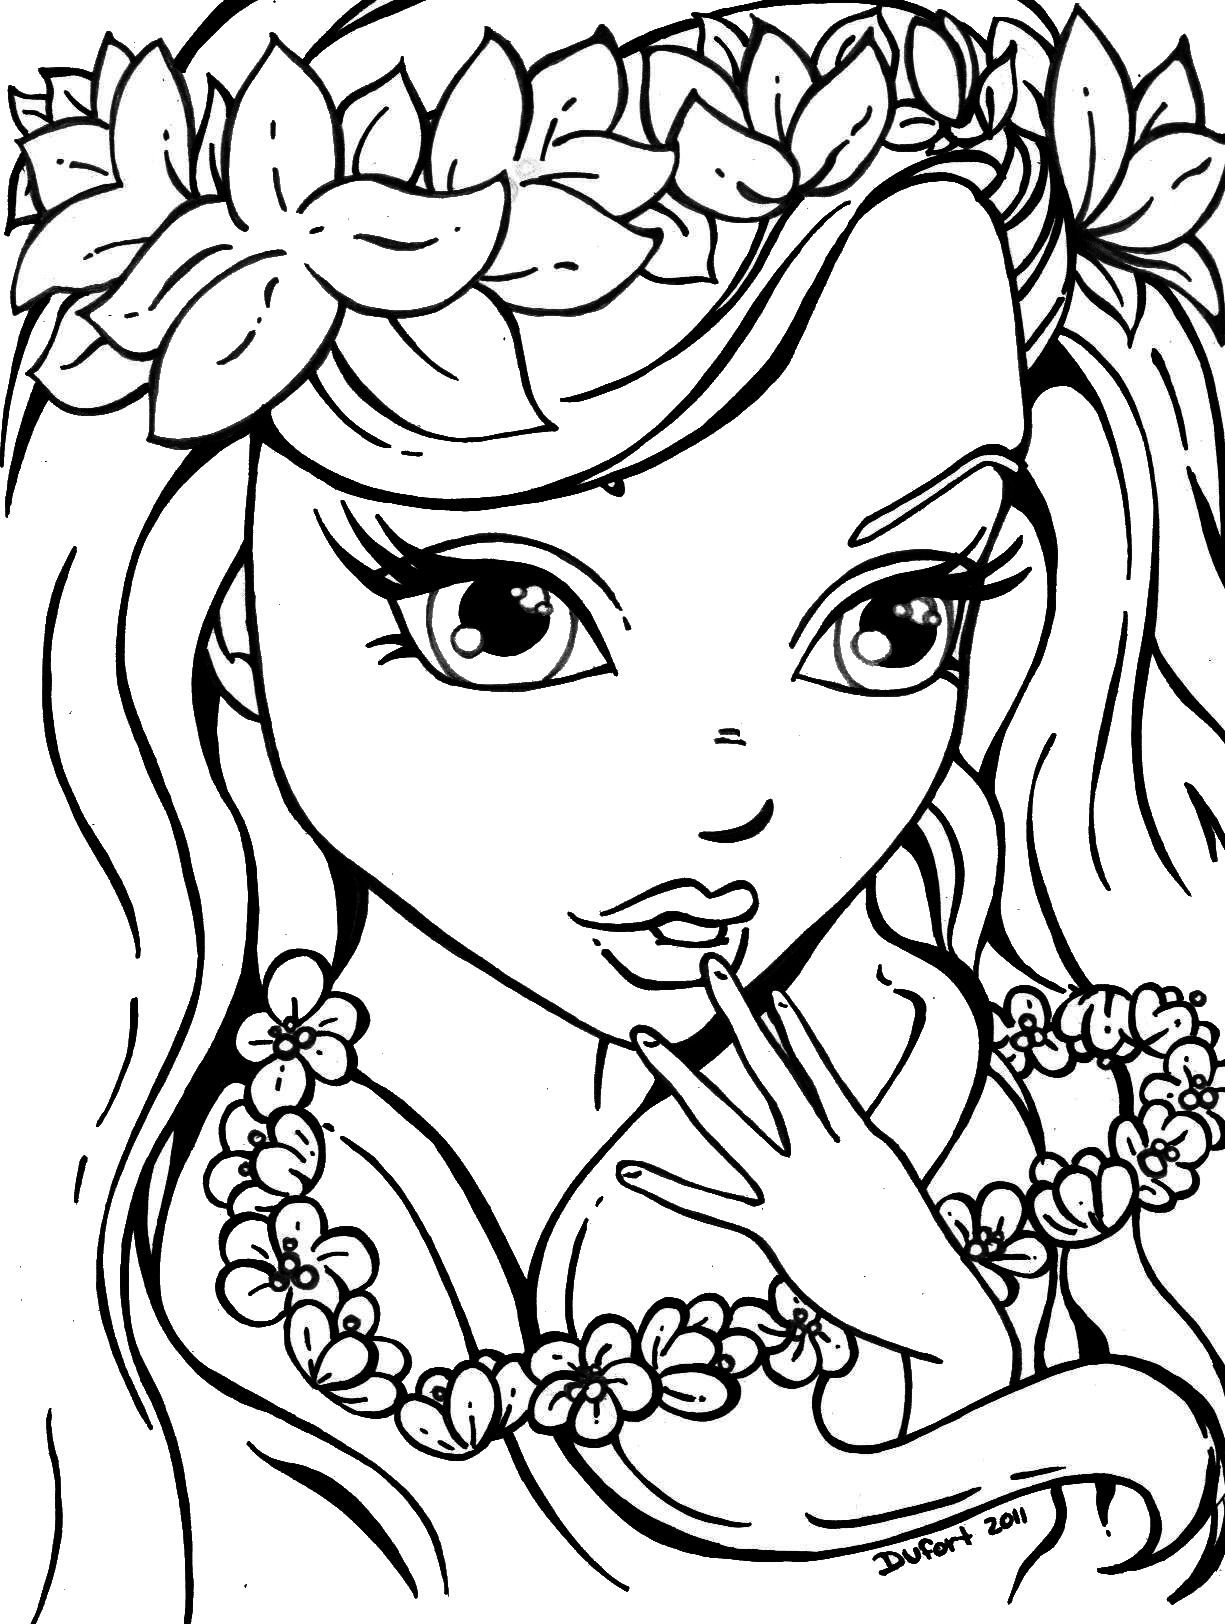 Free Printable Coloring Pages For Teens Girls Download Books 1225 - Free Printable Coloring Pages For Teens